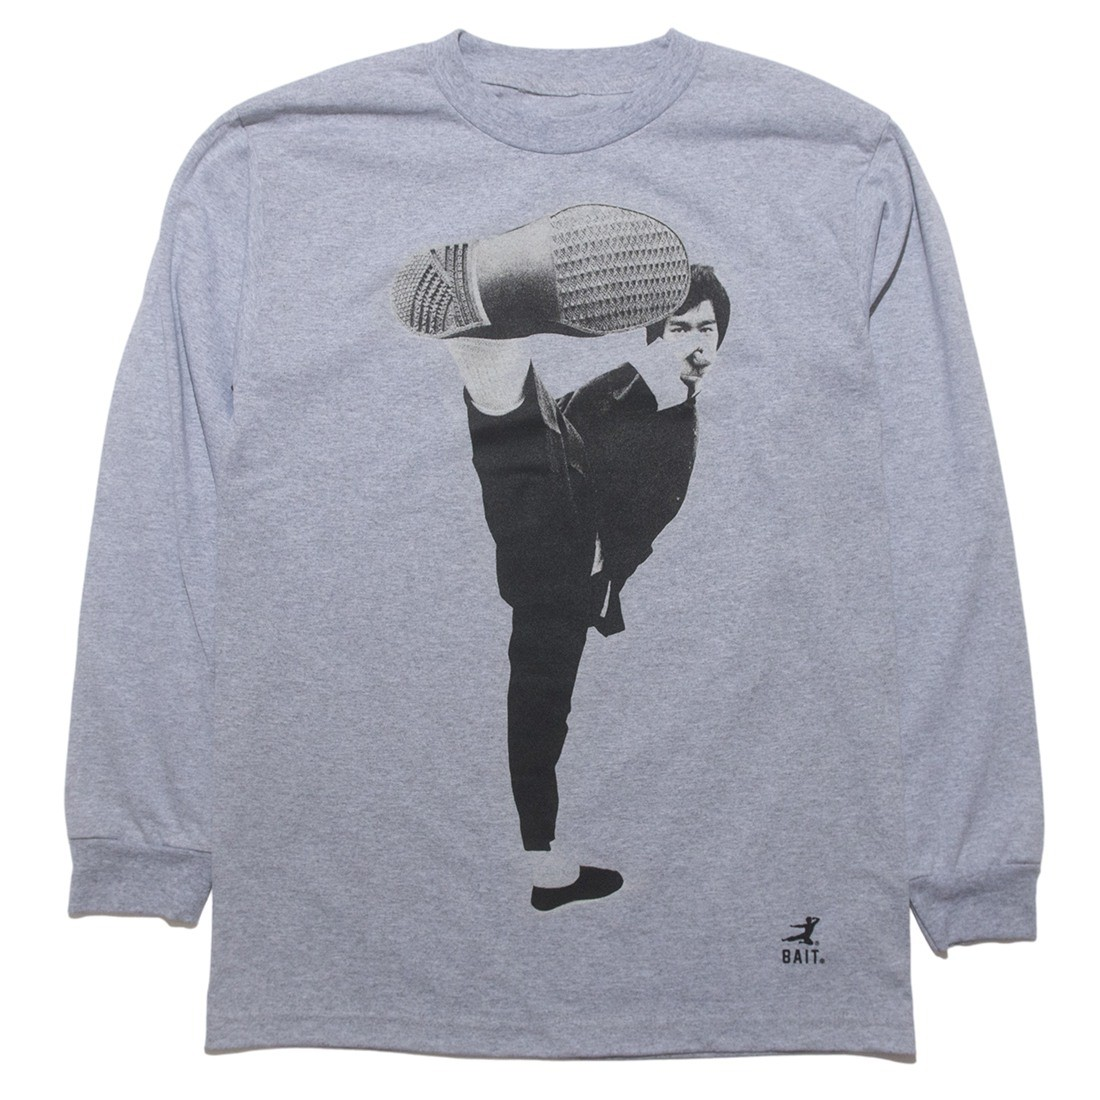 BAIT x Bruce Lee Men Kick Long Sleeve Tee (gray / silver)